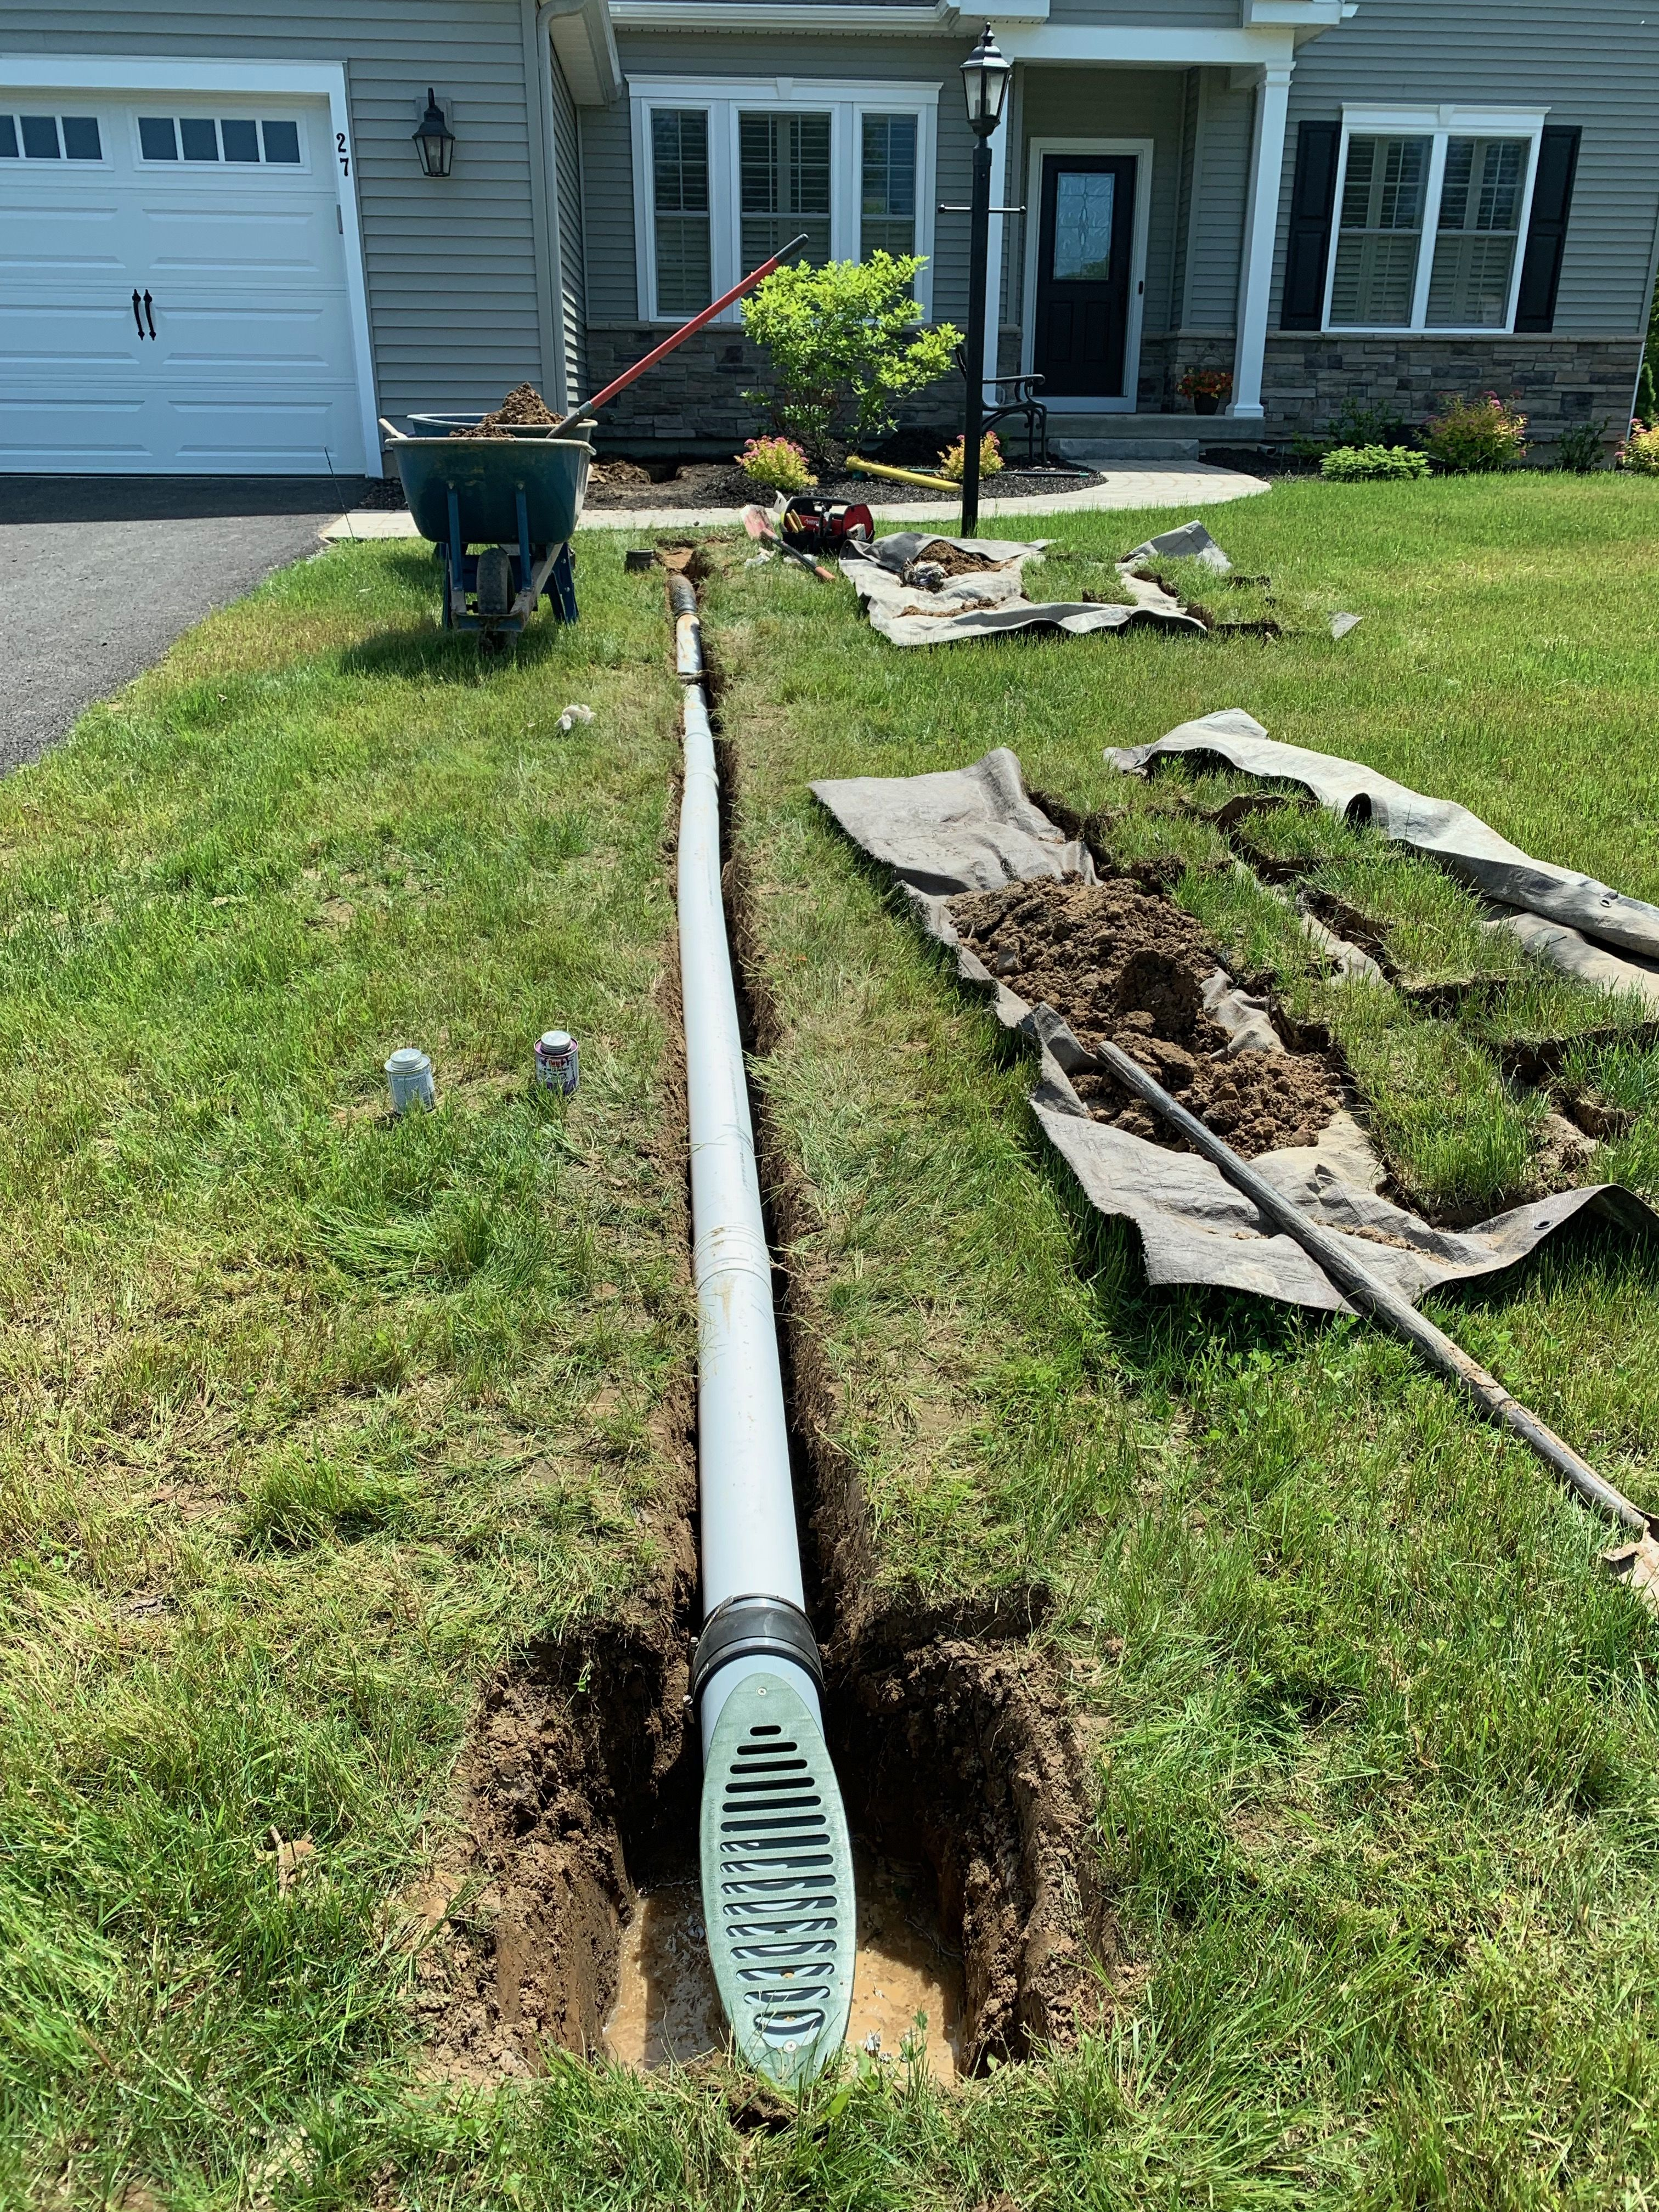 Foundation French Drain And Gutter Downspout Drainage System Draining Water Away From Walls Home Backyard Drainage Landscape Drainage Yard Drainage